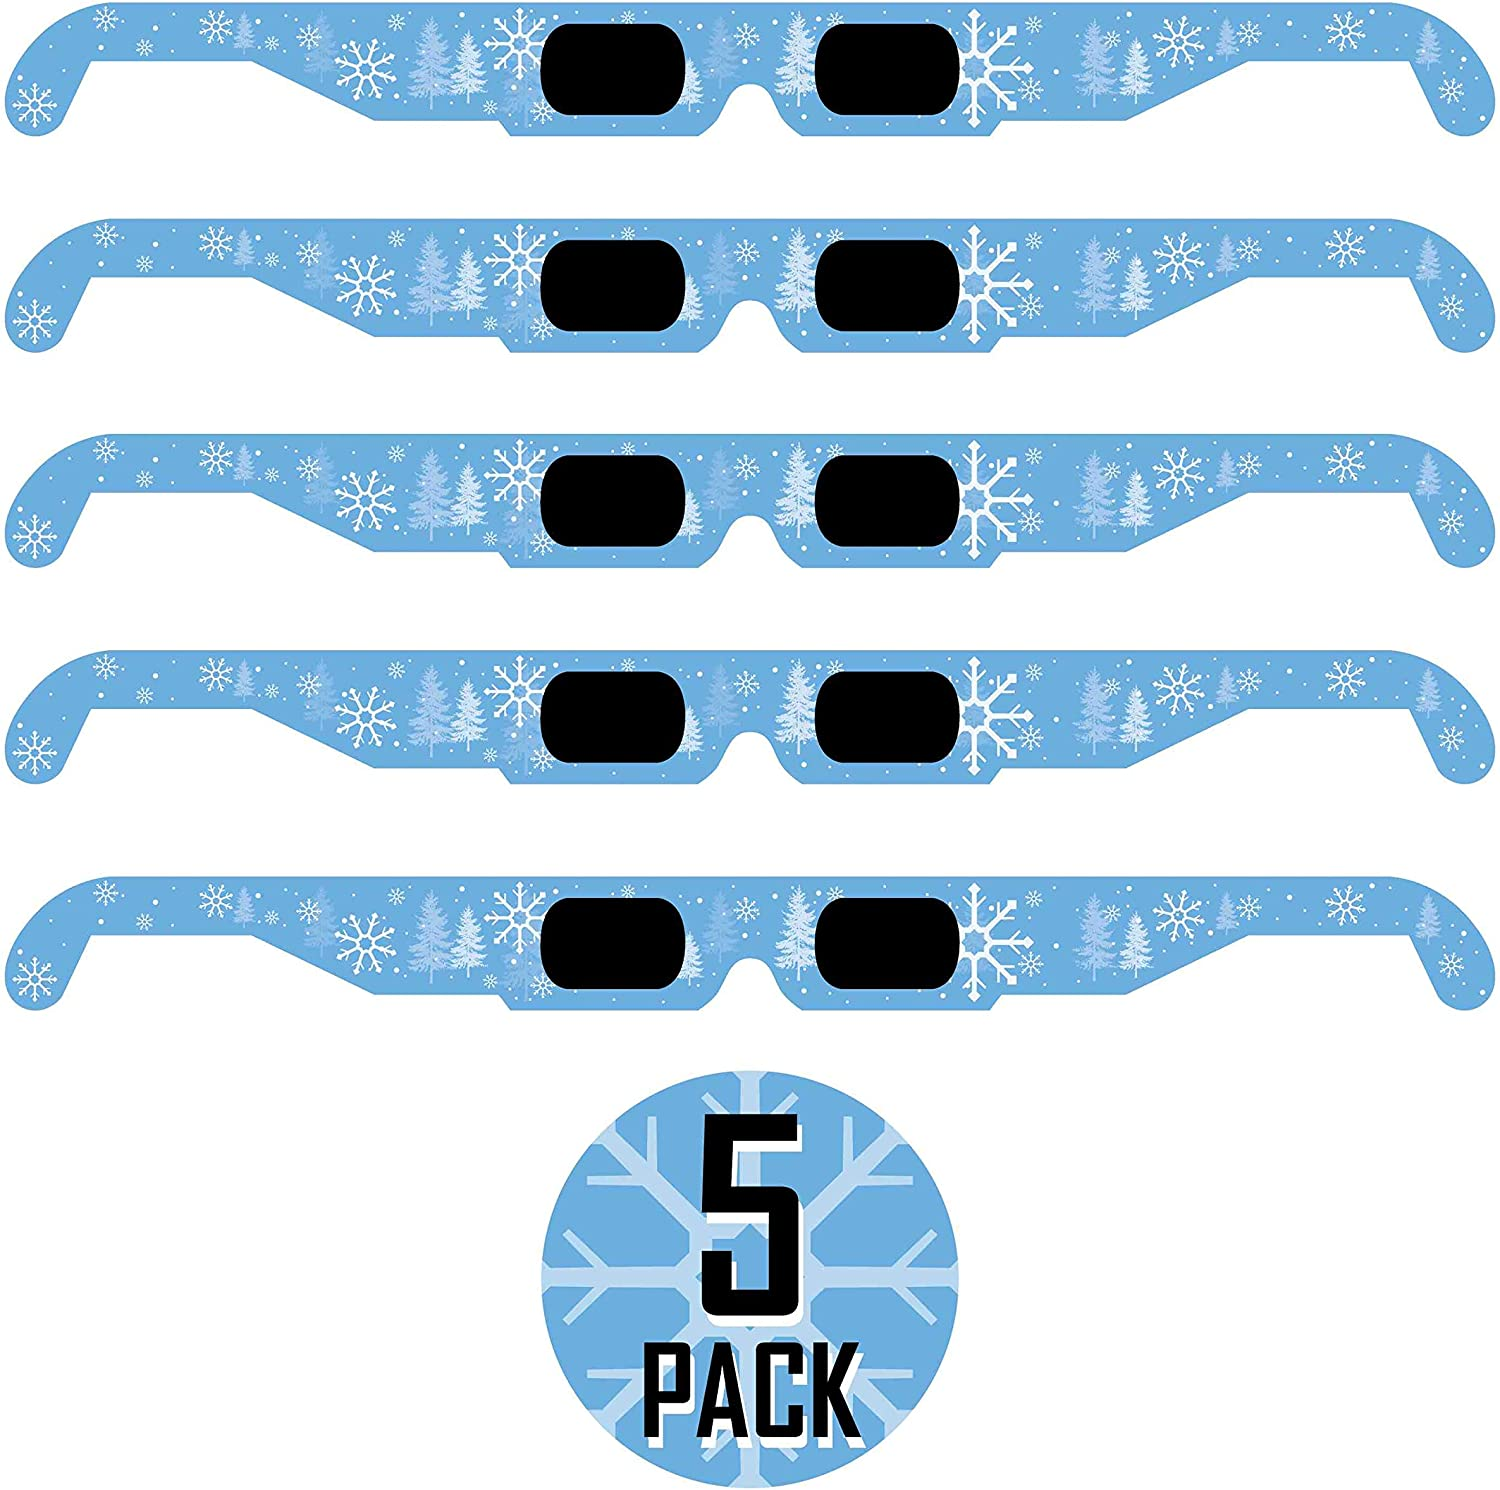 Christmas 3D Glasses Holiday Specs Transform Lights into Magical Snowflake Image 25 Pack